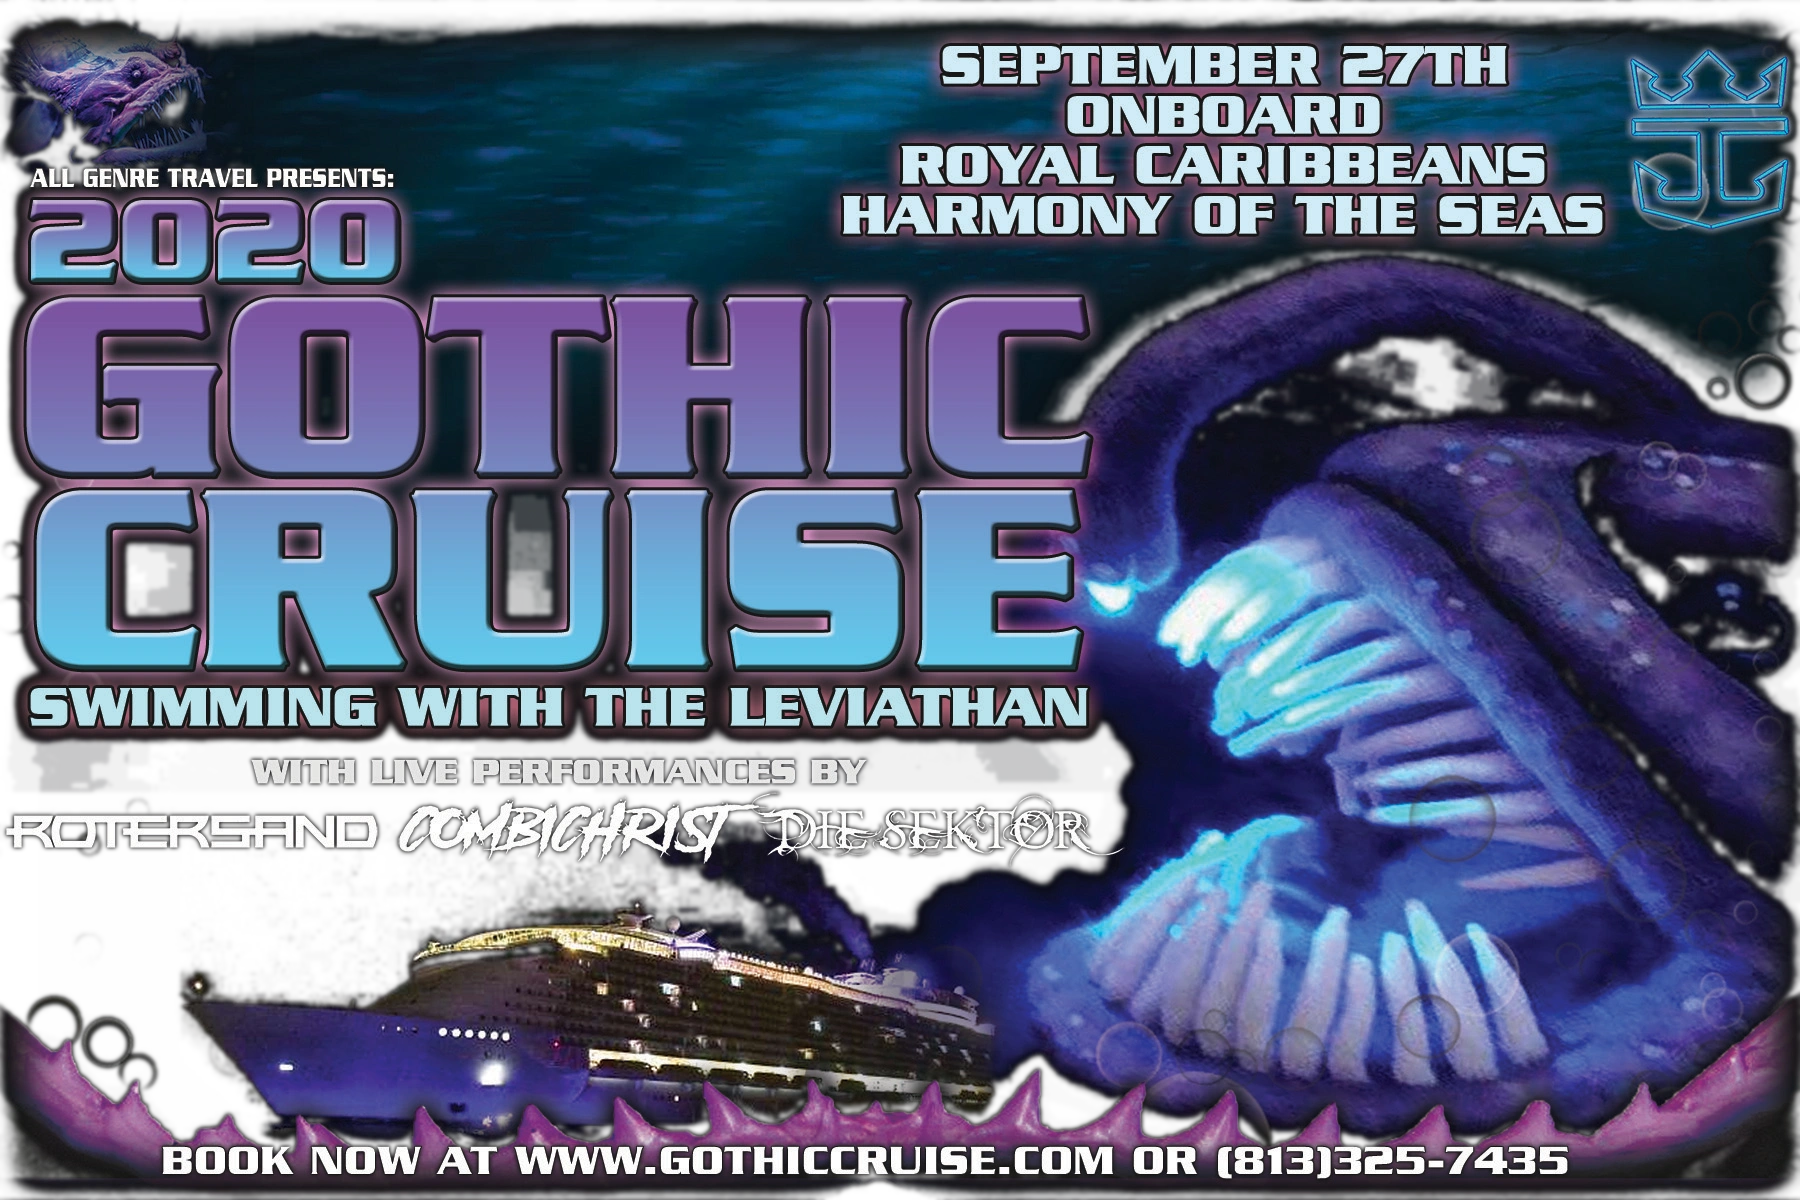 The 2020 Gothic Cruise Swimming with the Leviathan